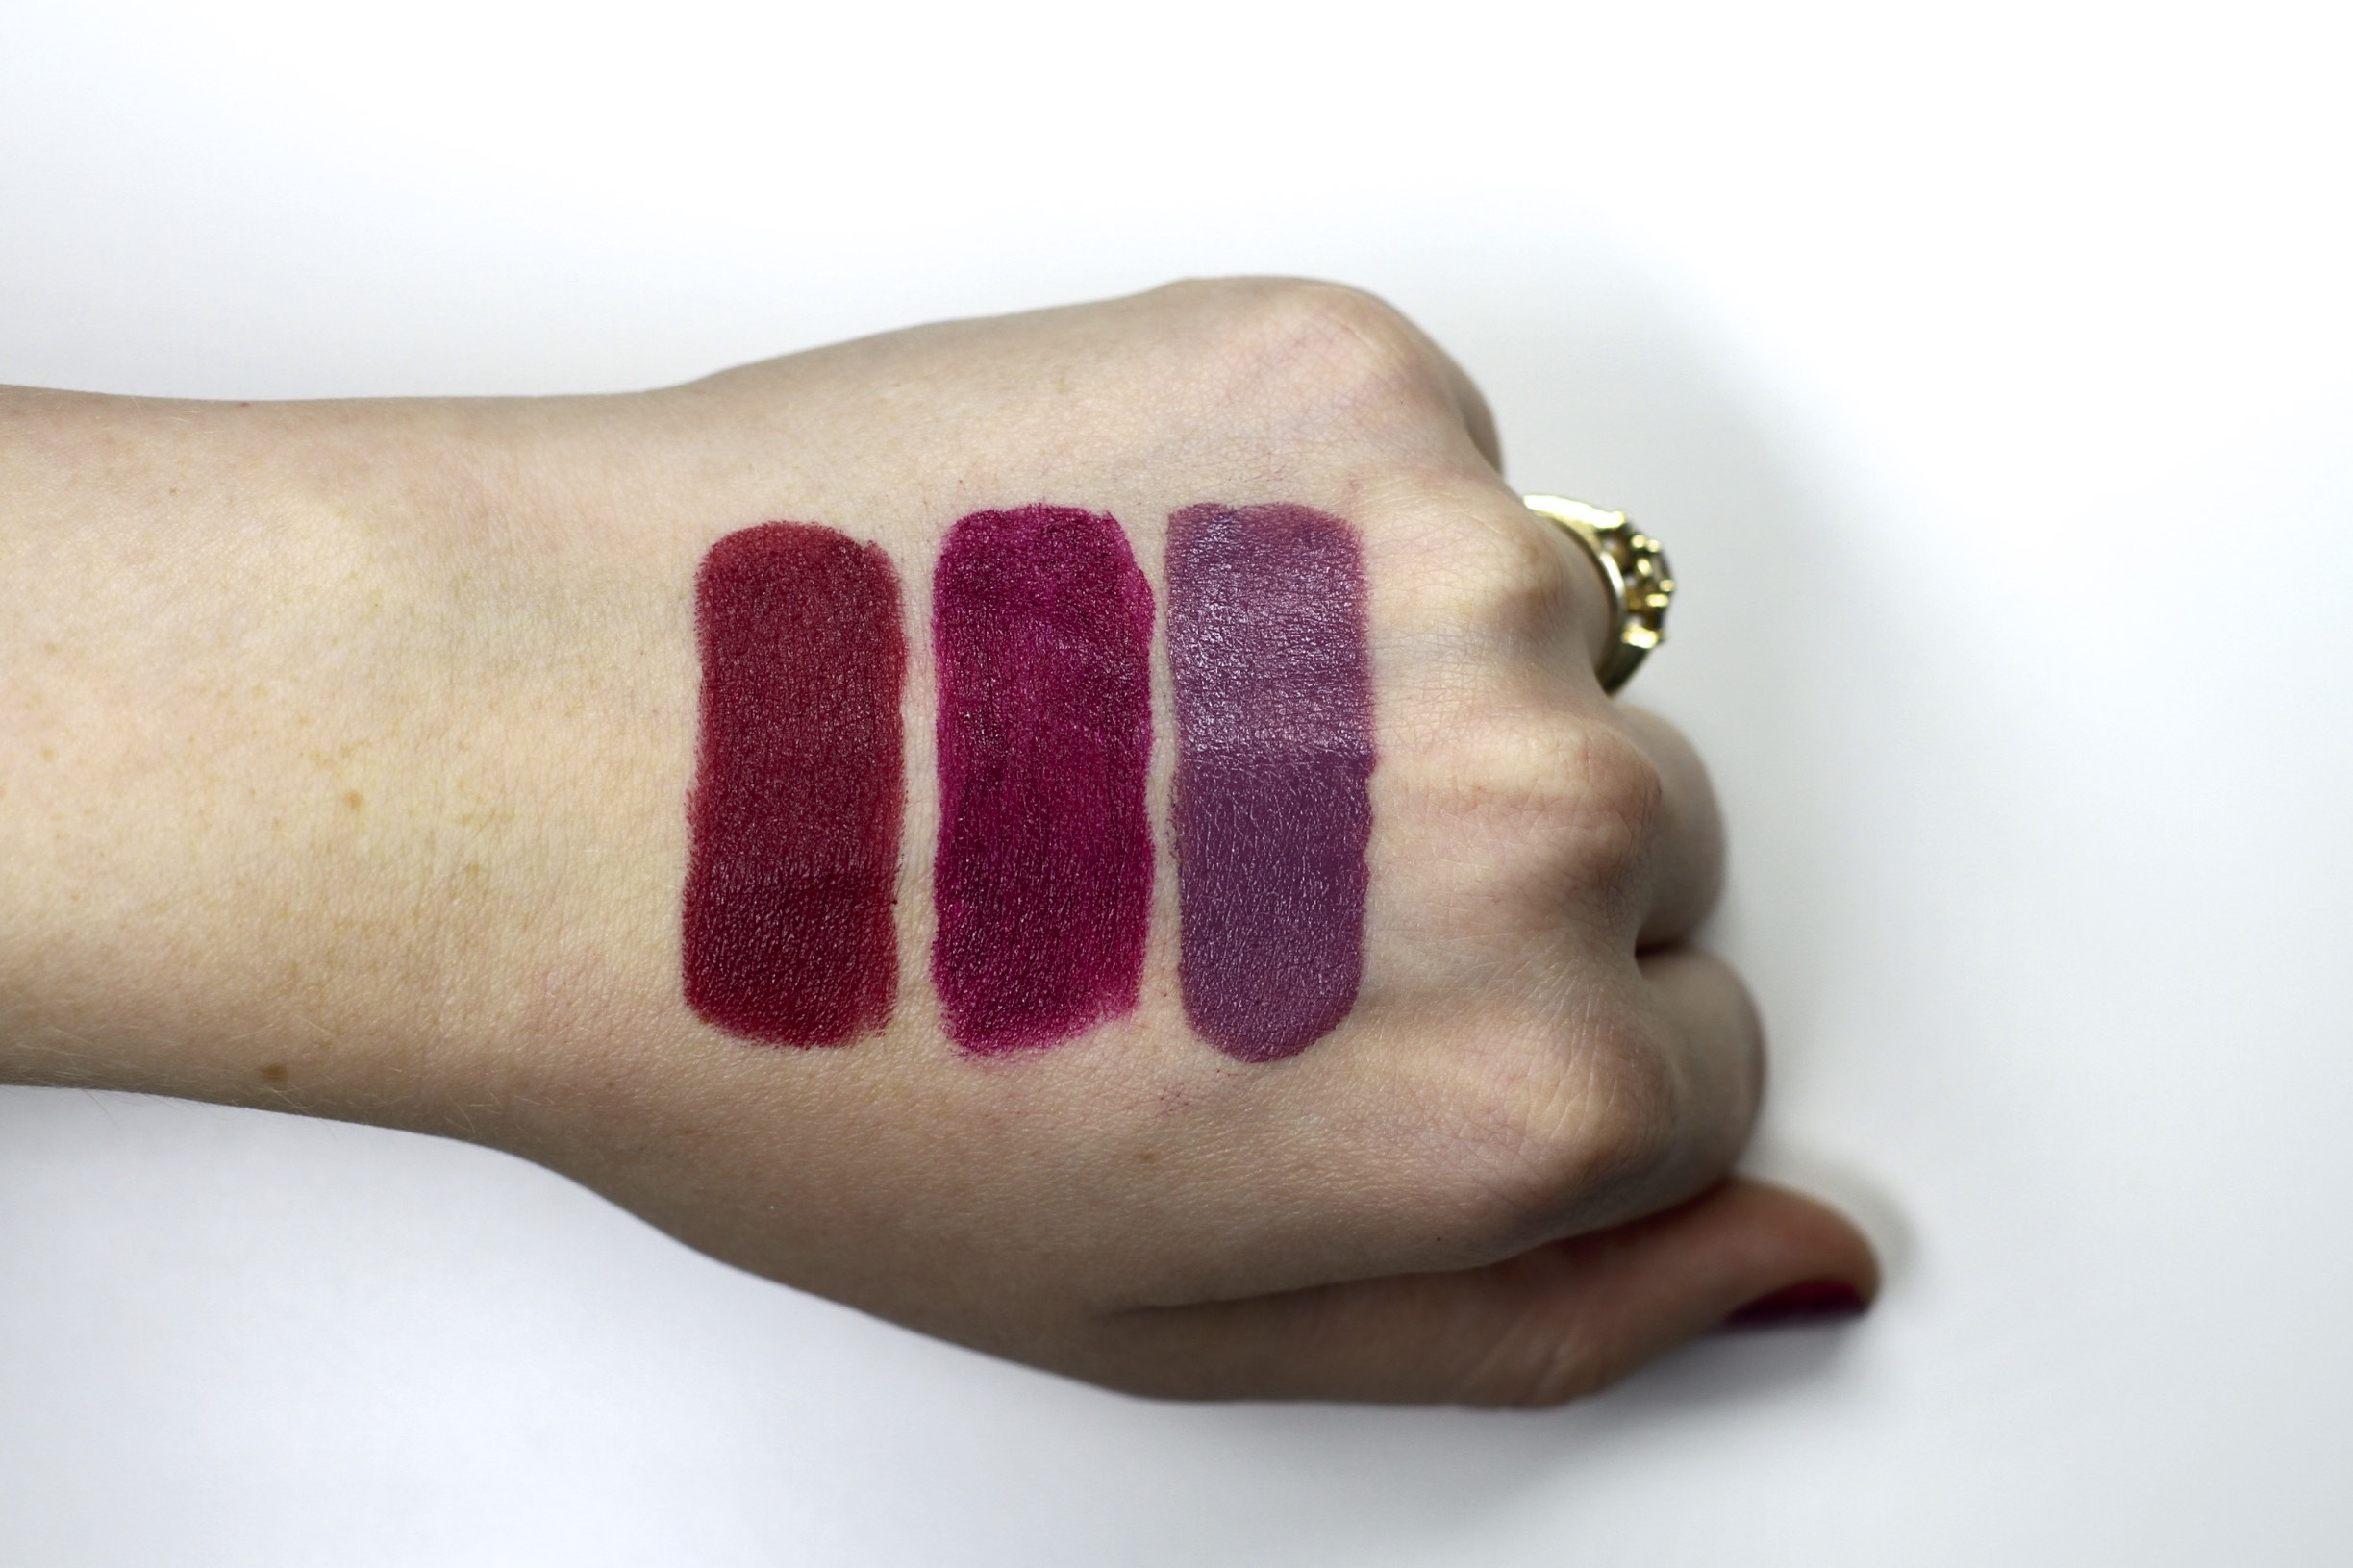 Left to Right: Vivian, Sugar Plum Fairy, Dominique